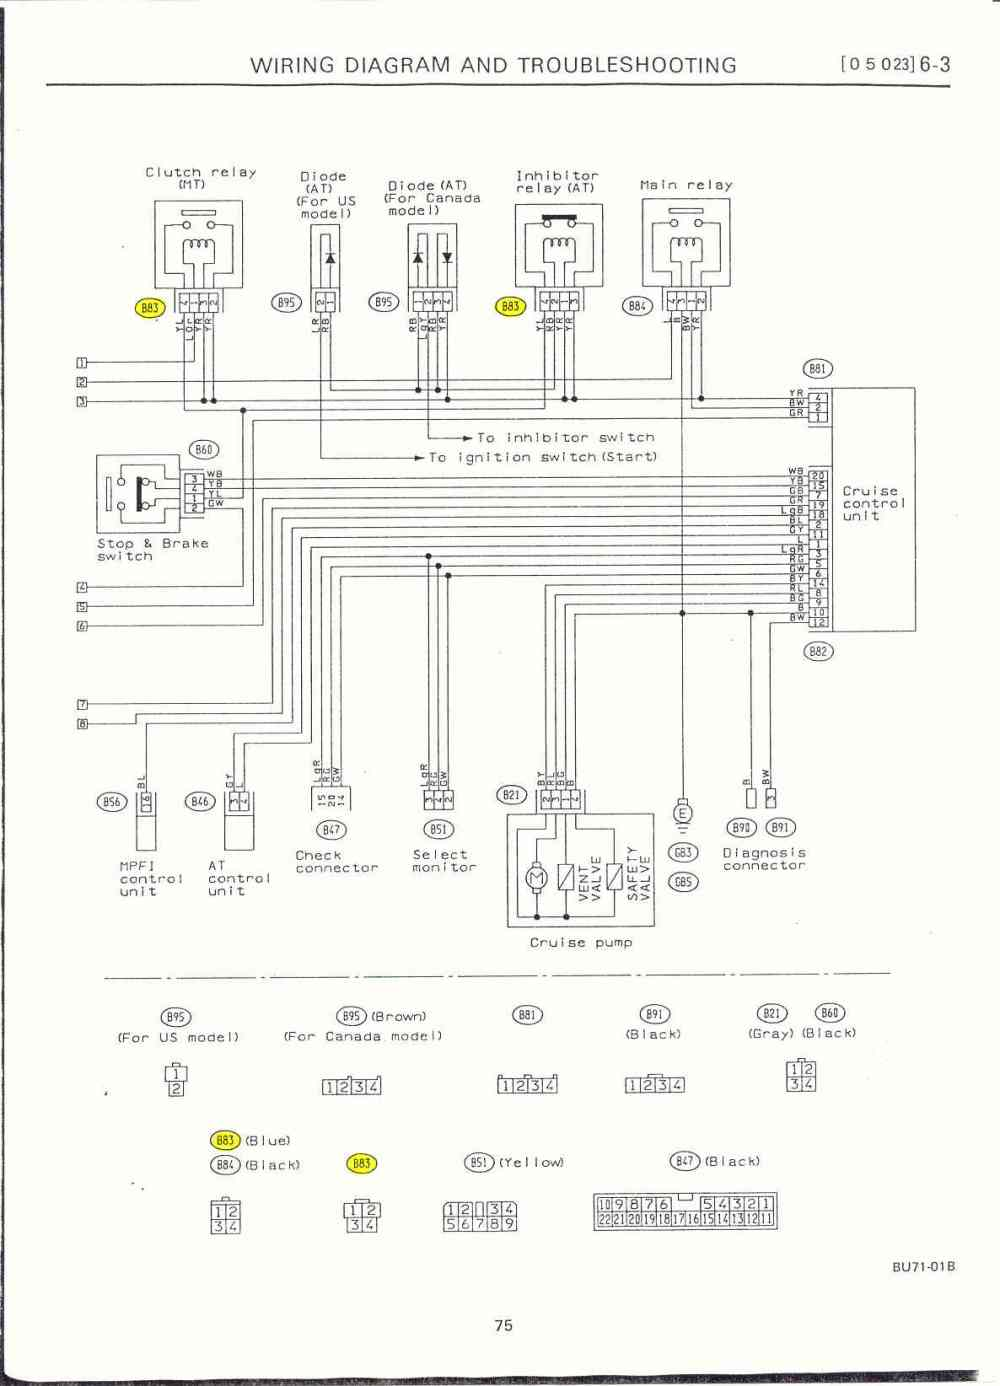 medium resolution of subaru legacy transmission wiring diagram wiring diagrams long subaru legacy transmission wiring diagram